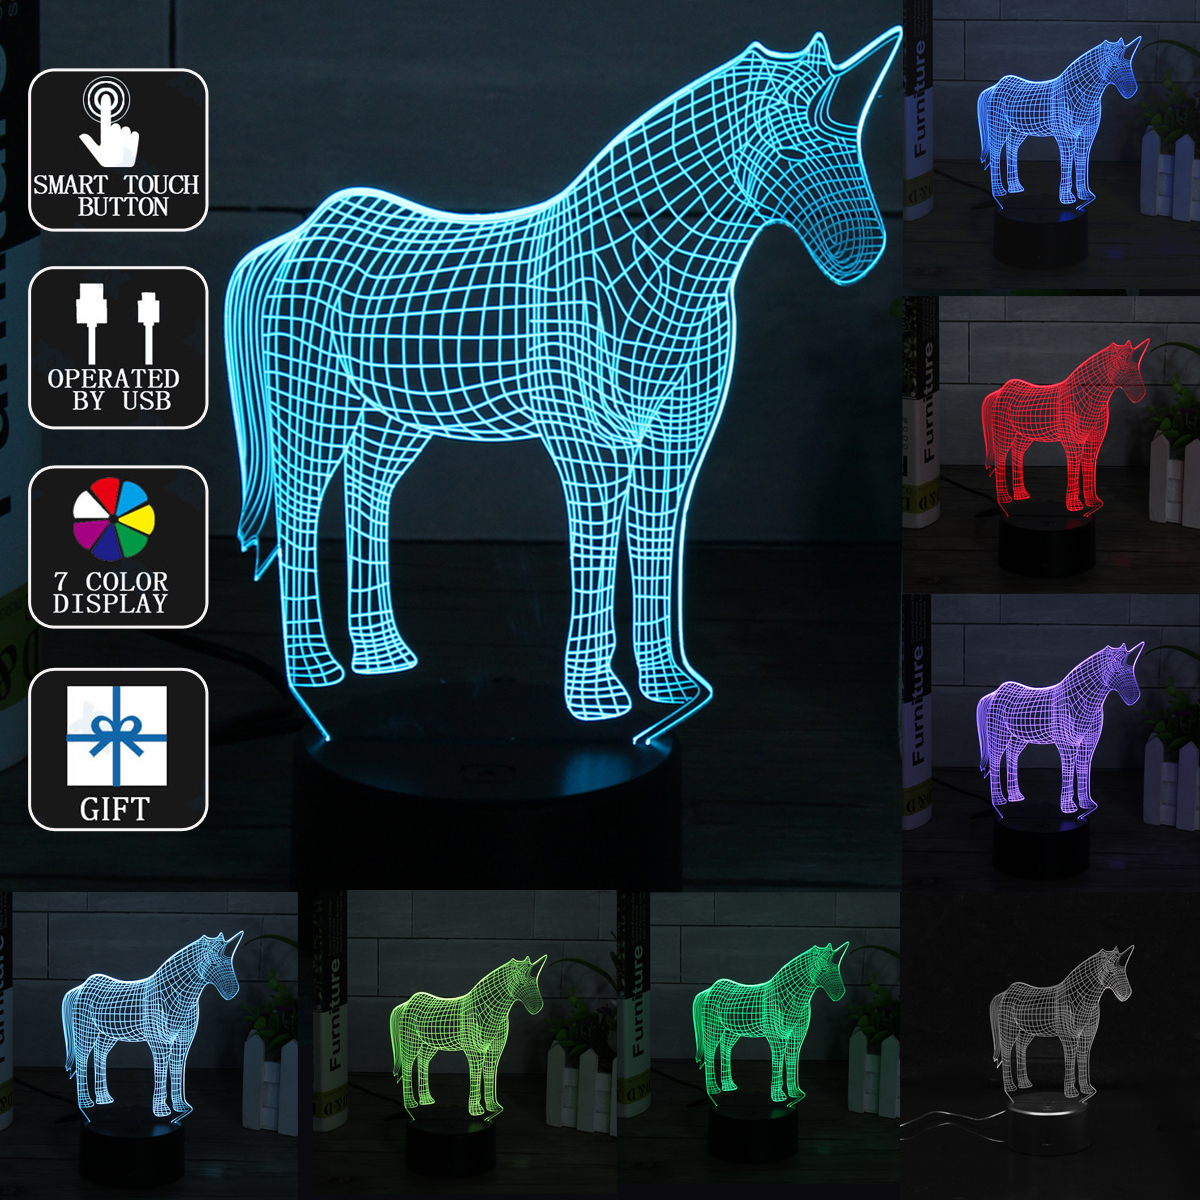 3D LED Night Light Lamp 7 Color Touch Switch Kids Children Christmas Birthday Gift Home Bedroom Decor